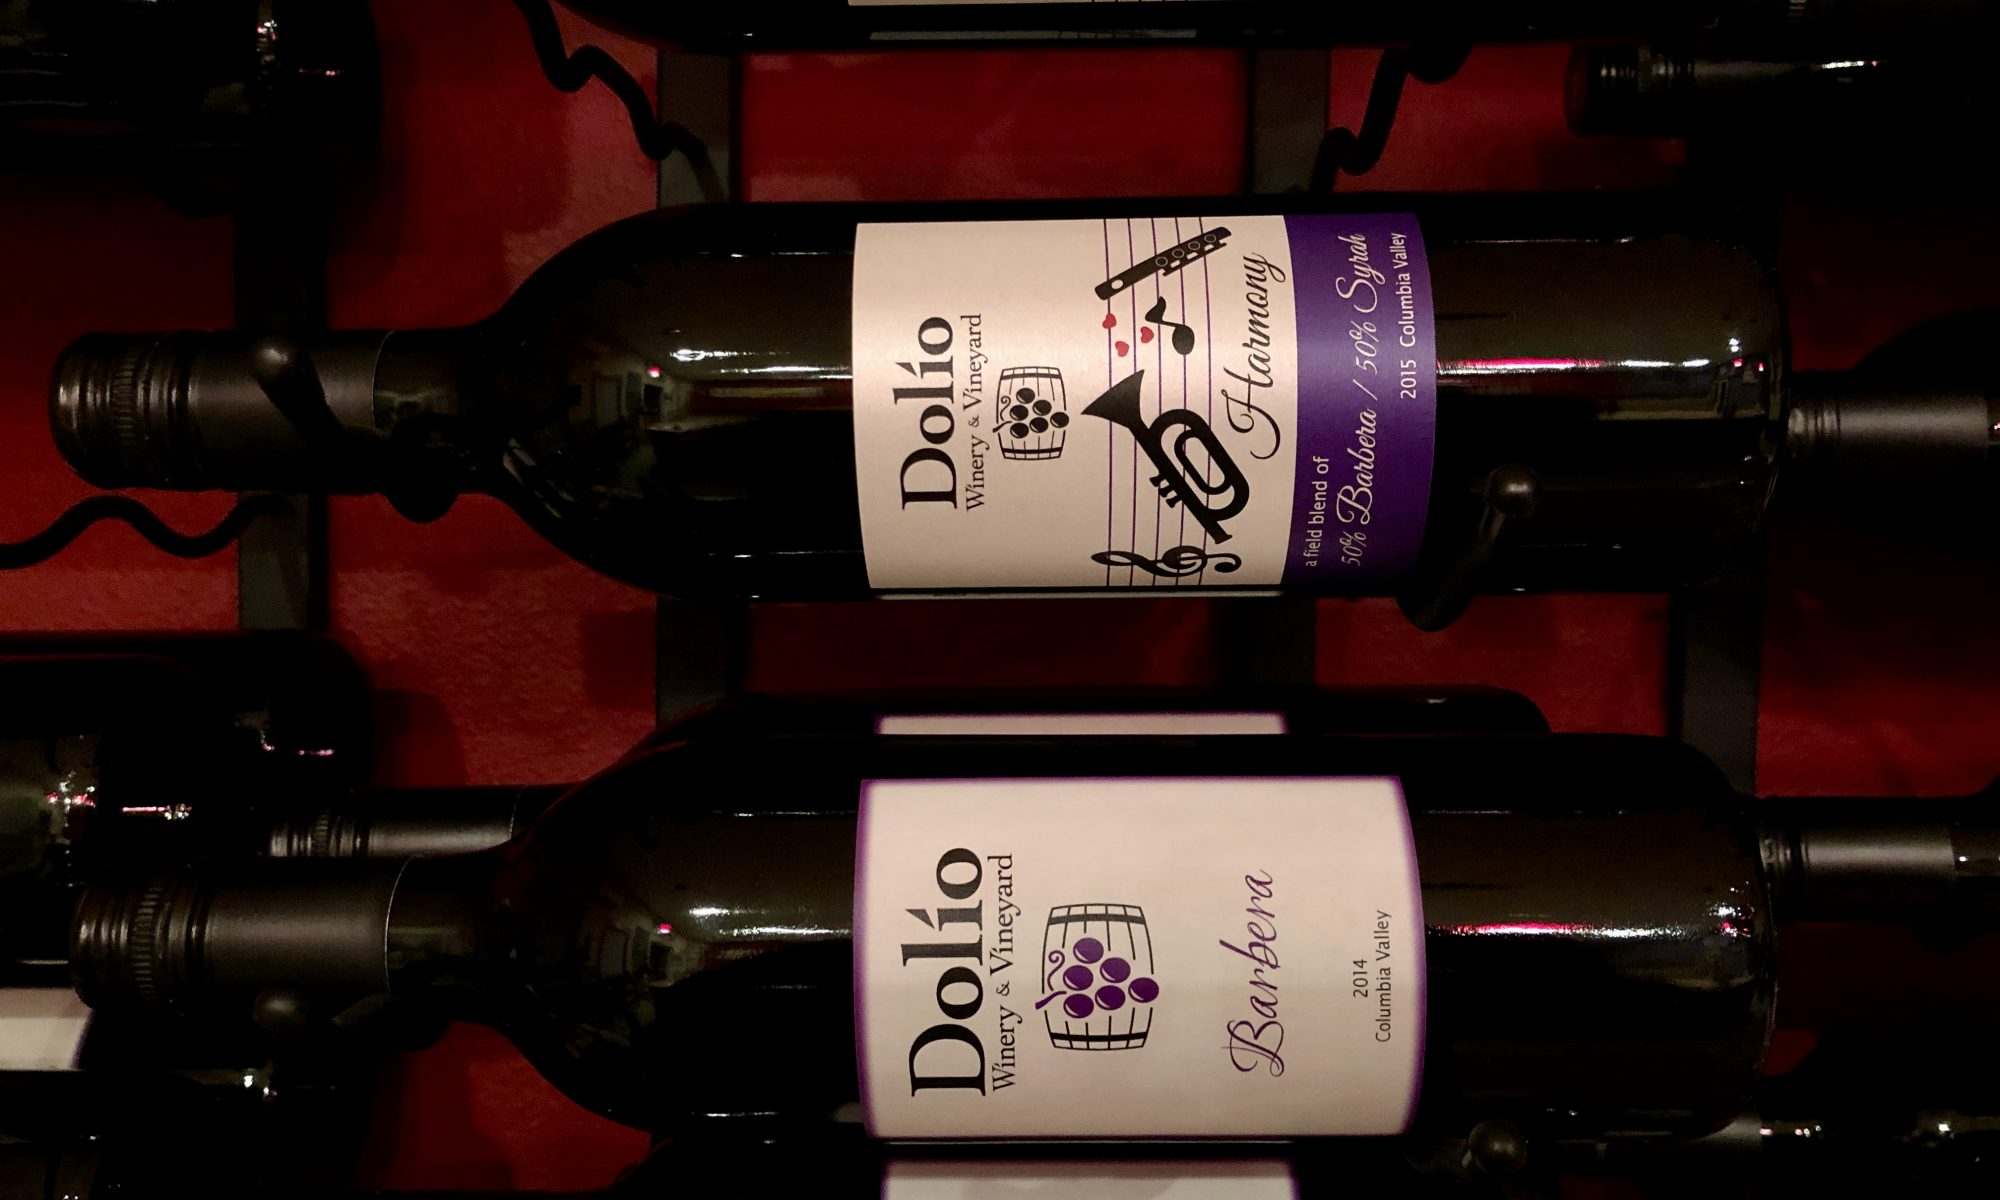 Dolio Winery's Harmony and 2014 Barbera